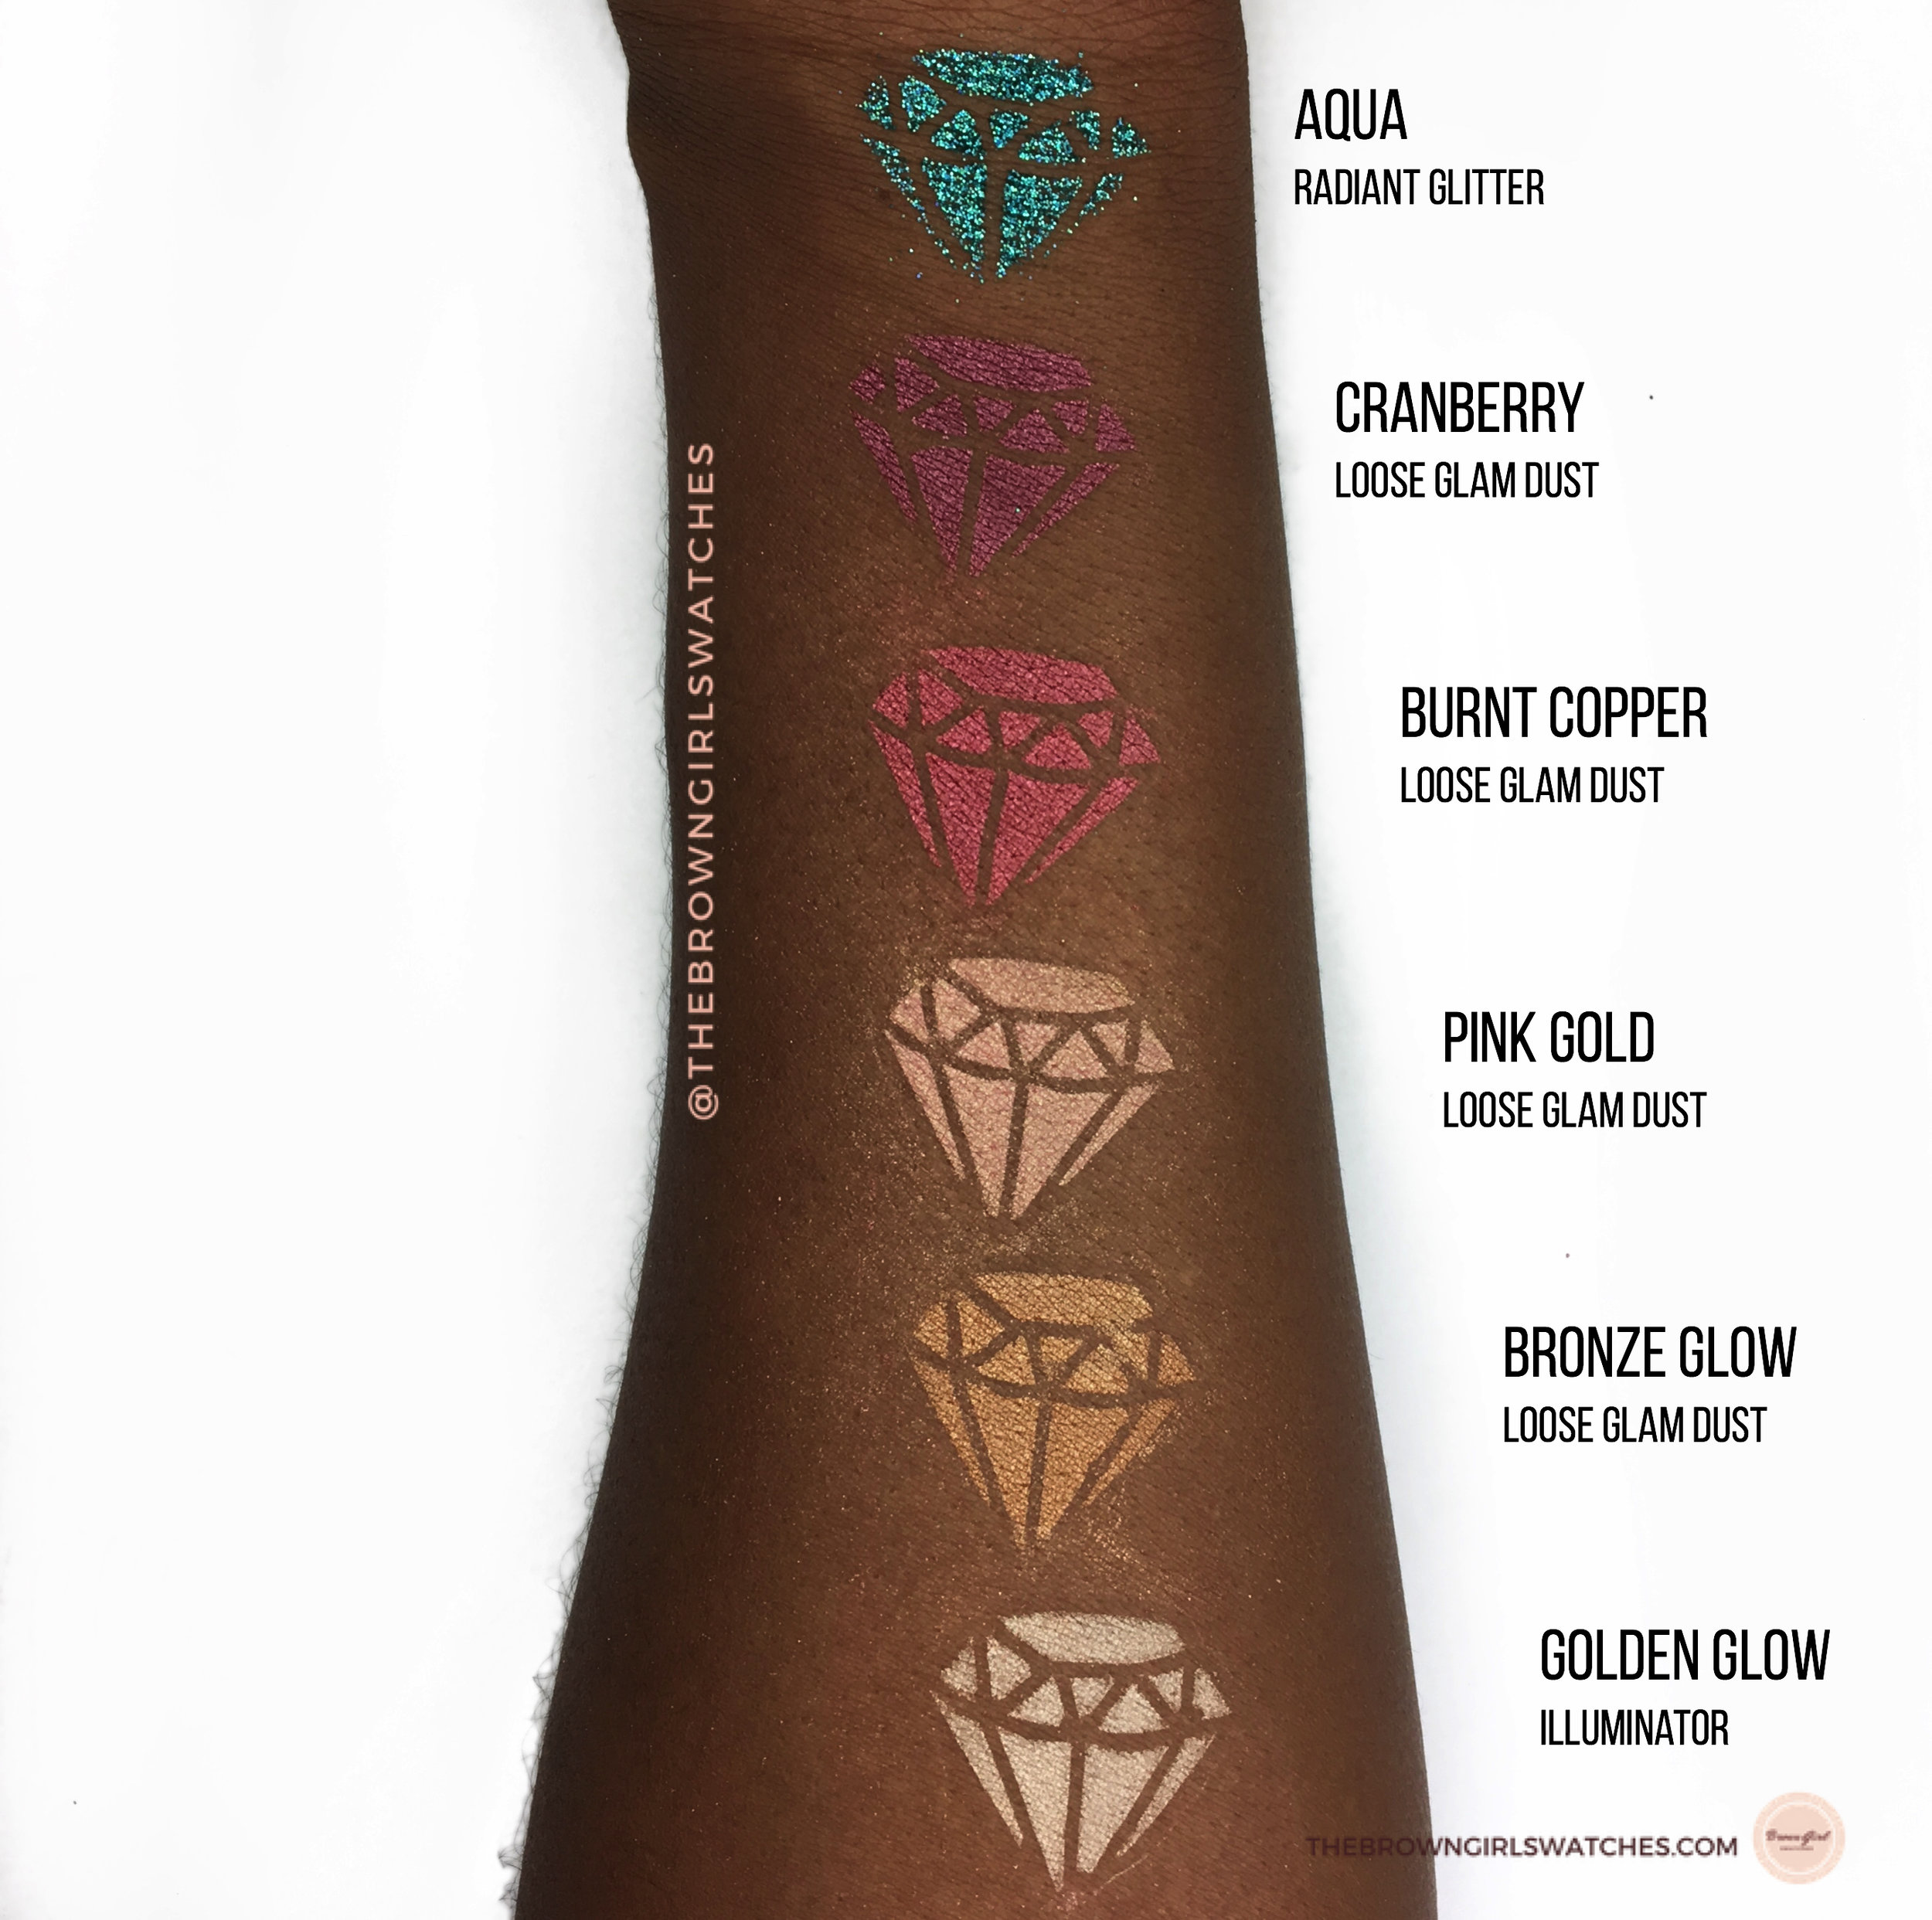 Swatches from Top to Bottom: Aqua, Cranberry, Burnt Copper, Pink Gold, Bronze Glow,and Golden Glow